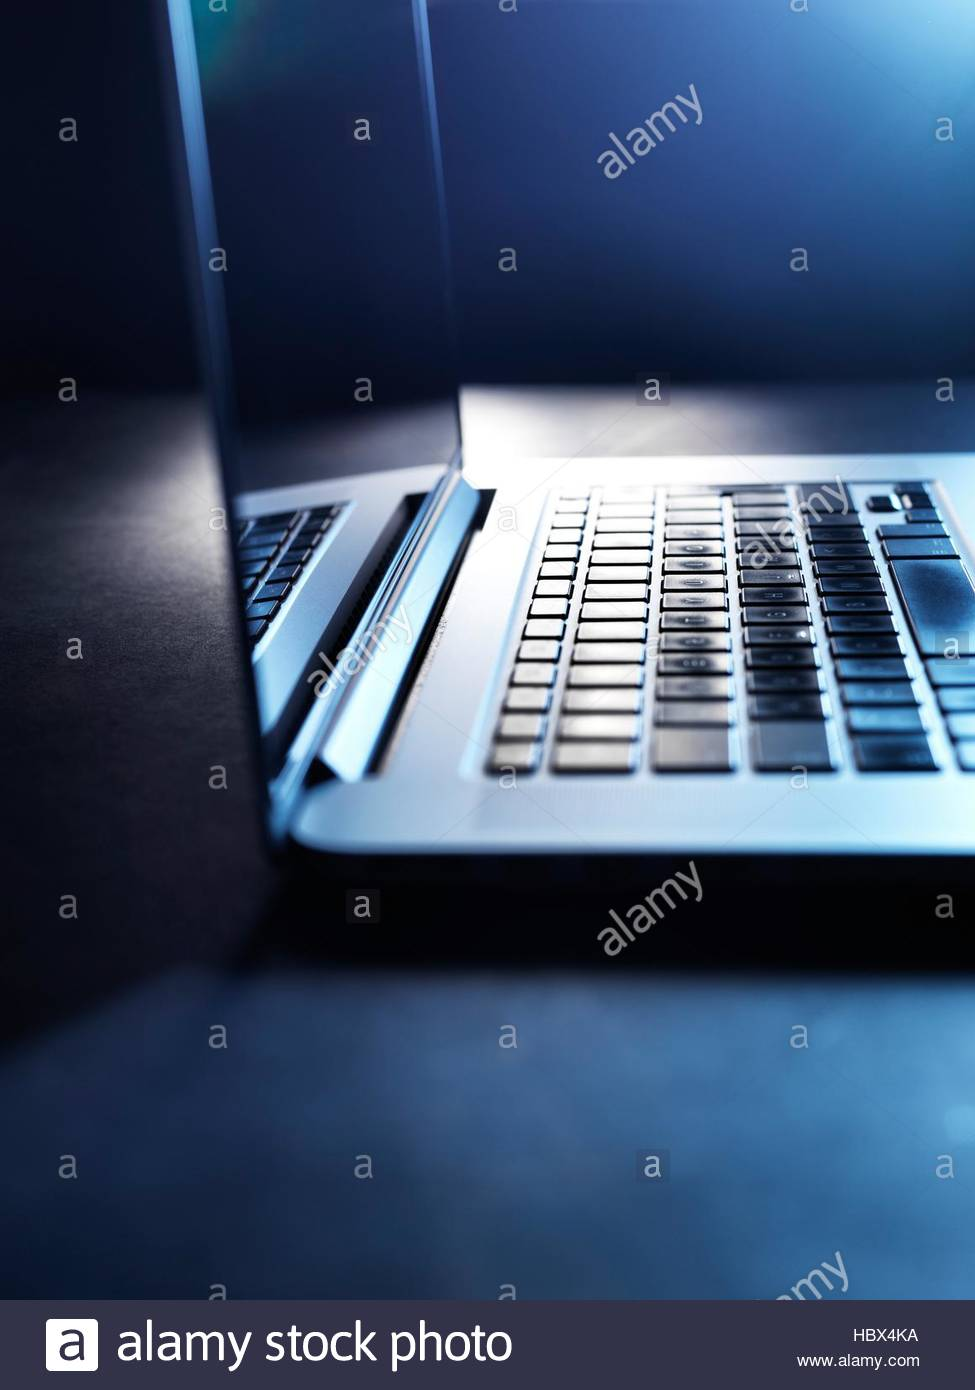 Typing on a laptop computer. - Stock Image